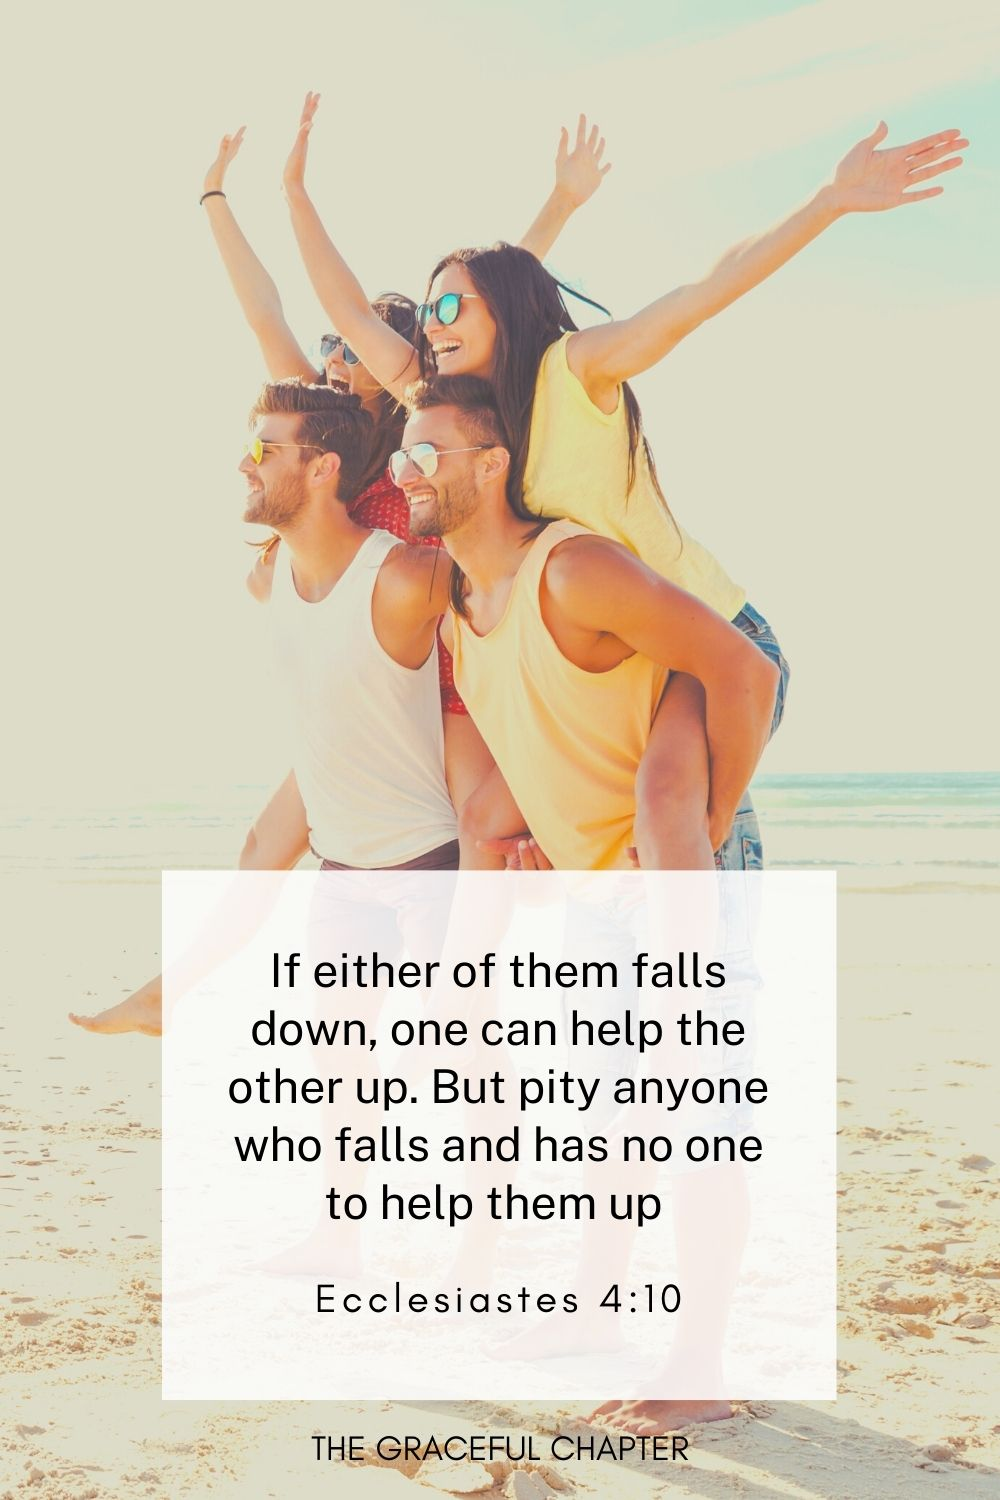 If either of them falls down, one can help the other up. But pity anyone who falls and has no one to help them up  Ecclesiastes 4:10